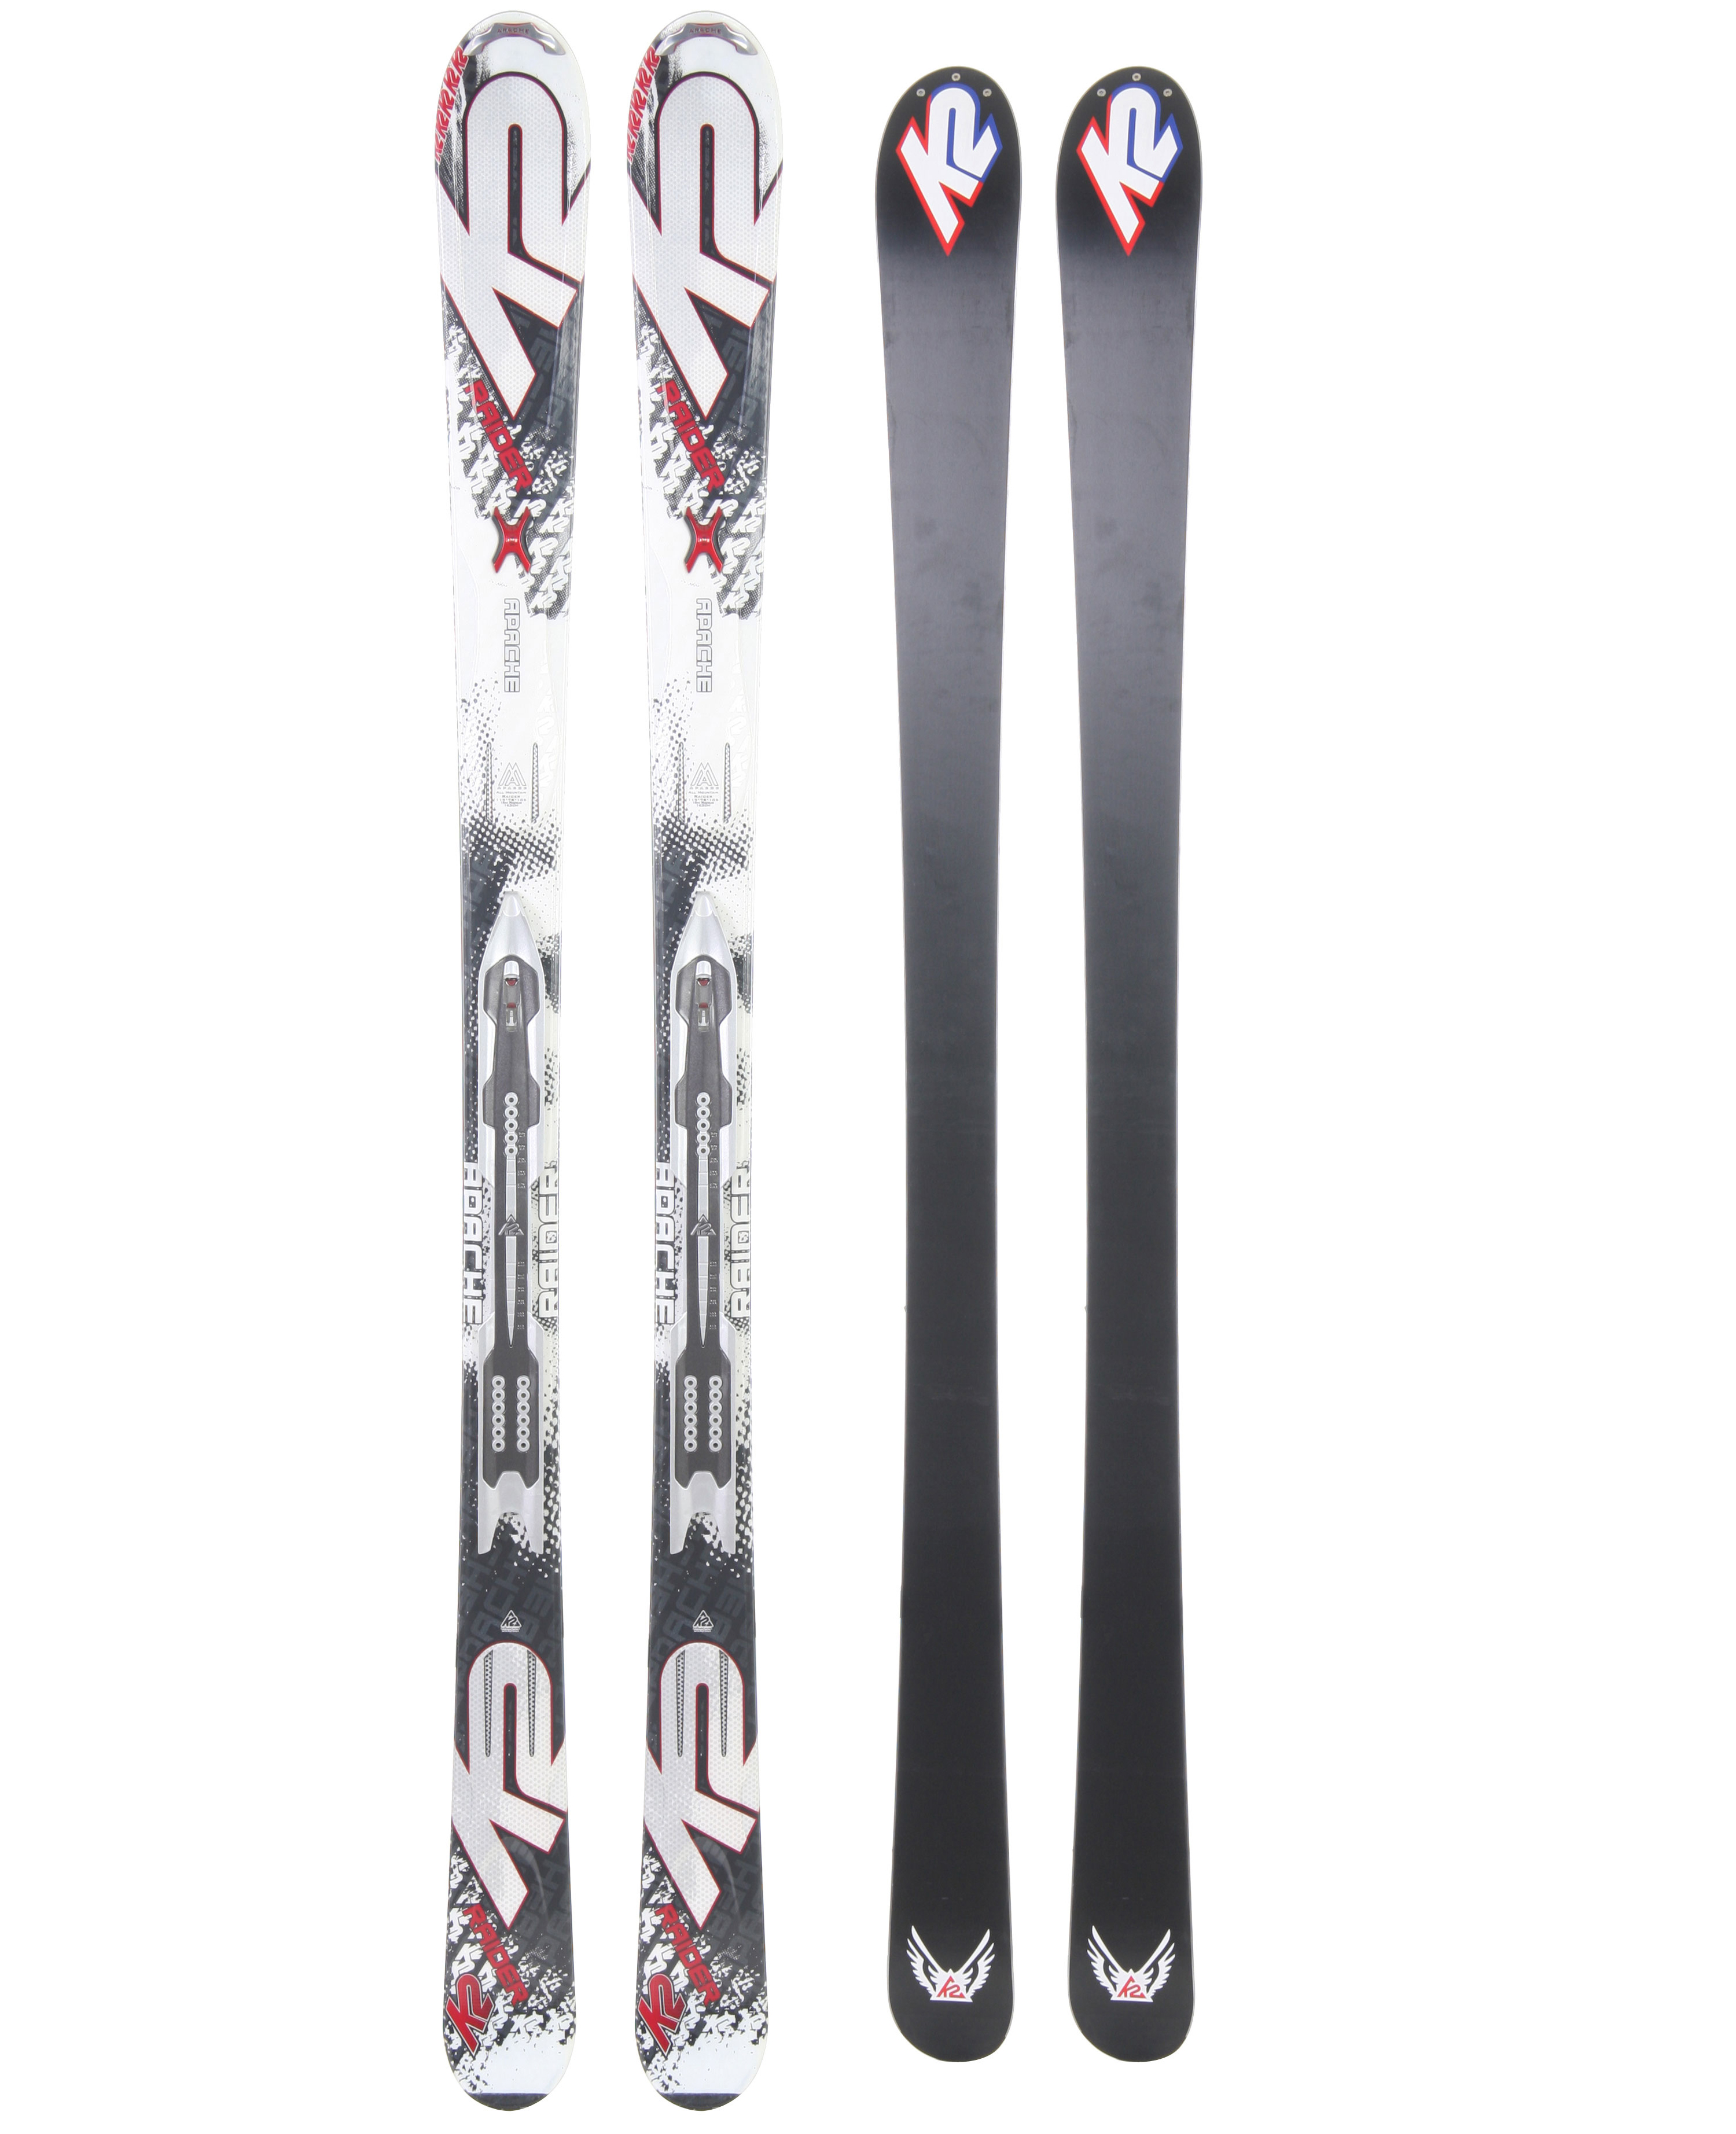 Ski K2's most forgiving performance oriented Apache Ski. Athletic skiers seeking performance at an exceptional value are going to love the Raider. This versatile ski is built on the proven Recon chassis but in a torsion box construction for added versatility over the entire mountain.Key Features of The K2 Apache Raider Skis 163: Ungroomed: 50% / Groomed: 50% 18m@177 Turn Radius Torsion Box Cap Construction Fir/Aspen Core Bindings Options: K2/M2 11.0 TC Mod Monic MOD Technology Triaxial Braiding - $374.46